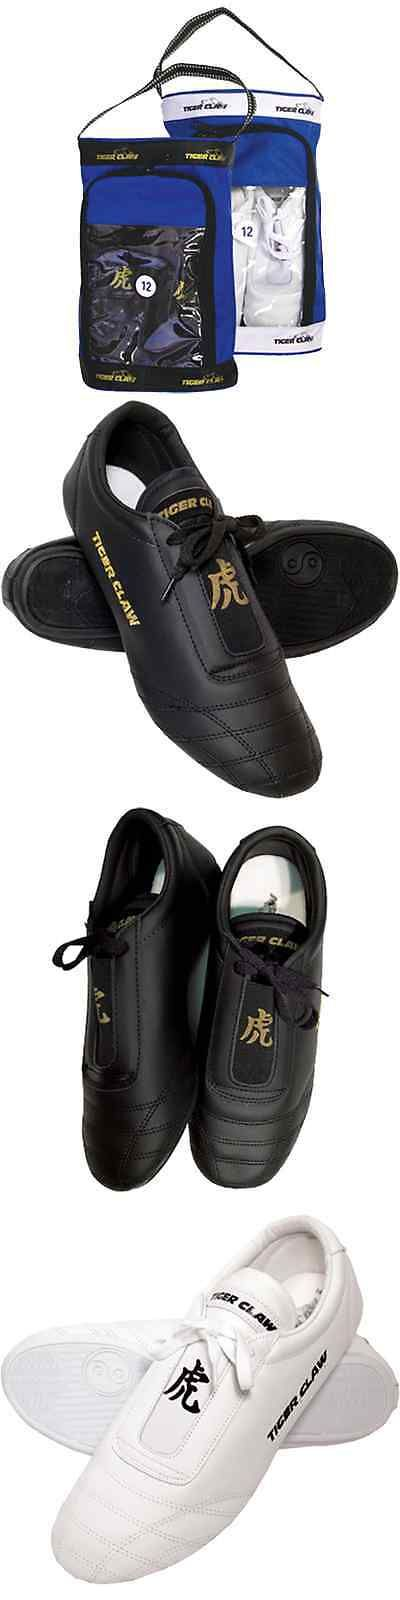 Shoes and Footwear 73989: Martial Arts Shoes -> BUY IT NOW ONLY: $40.5 on eBay!